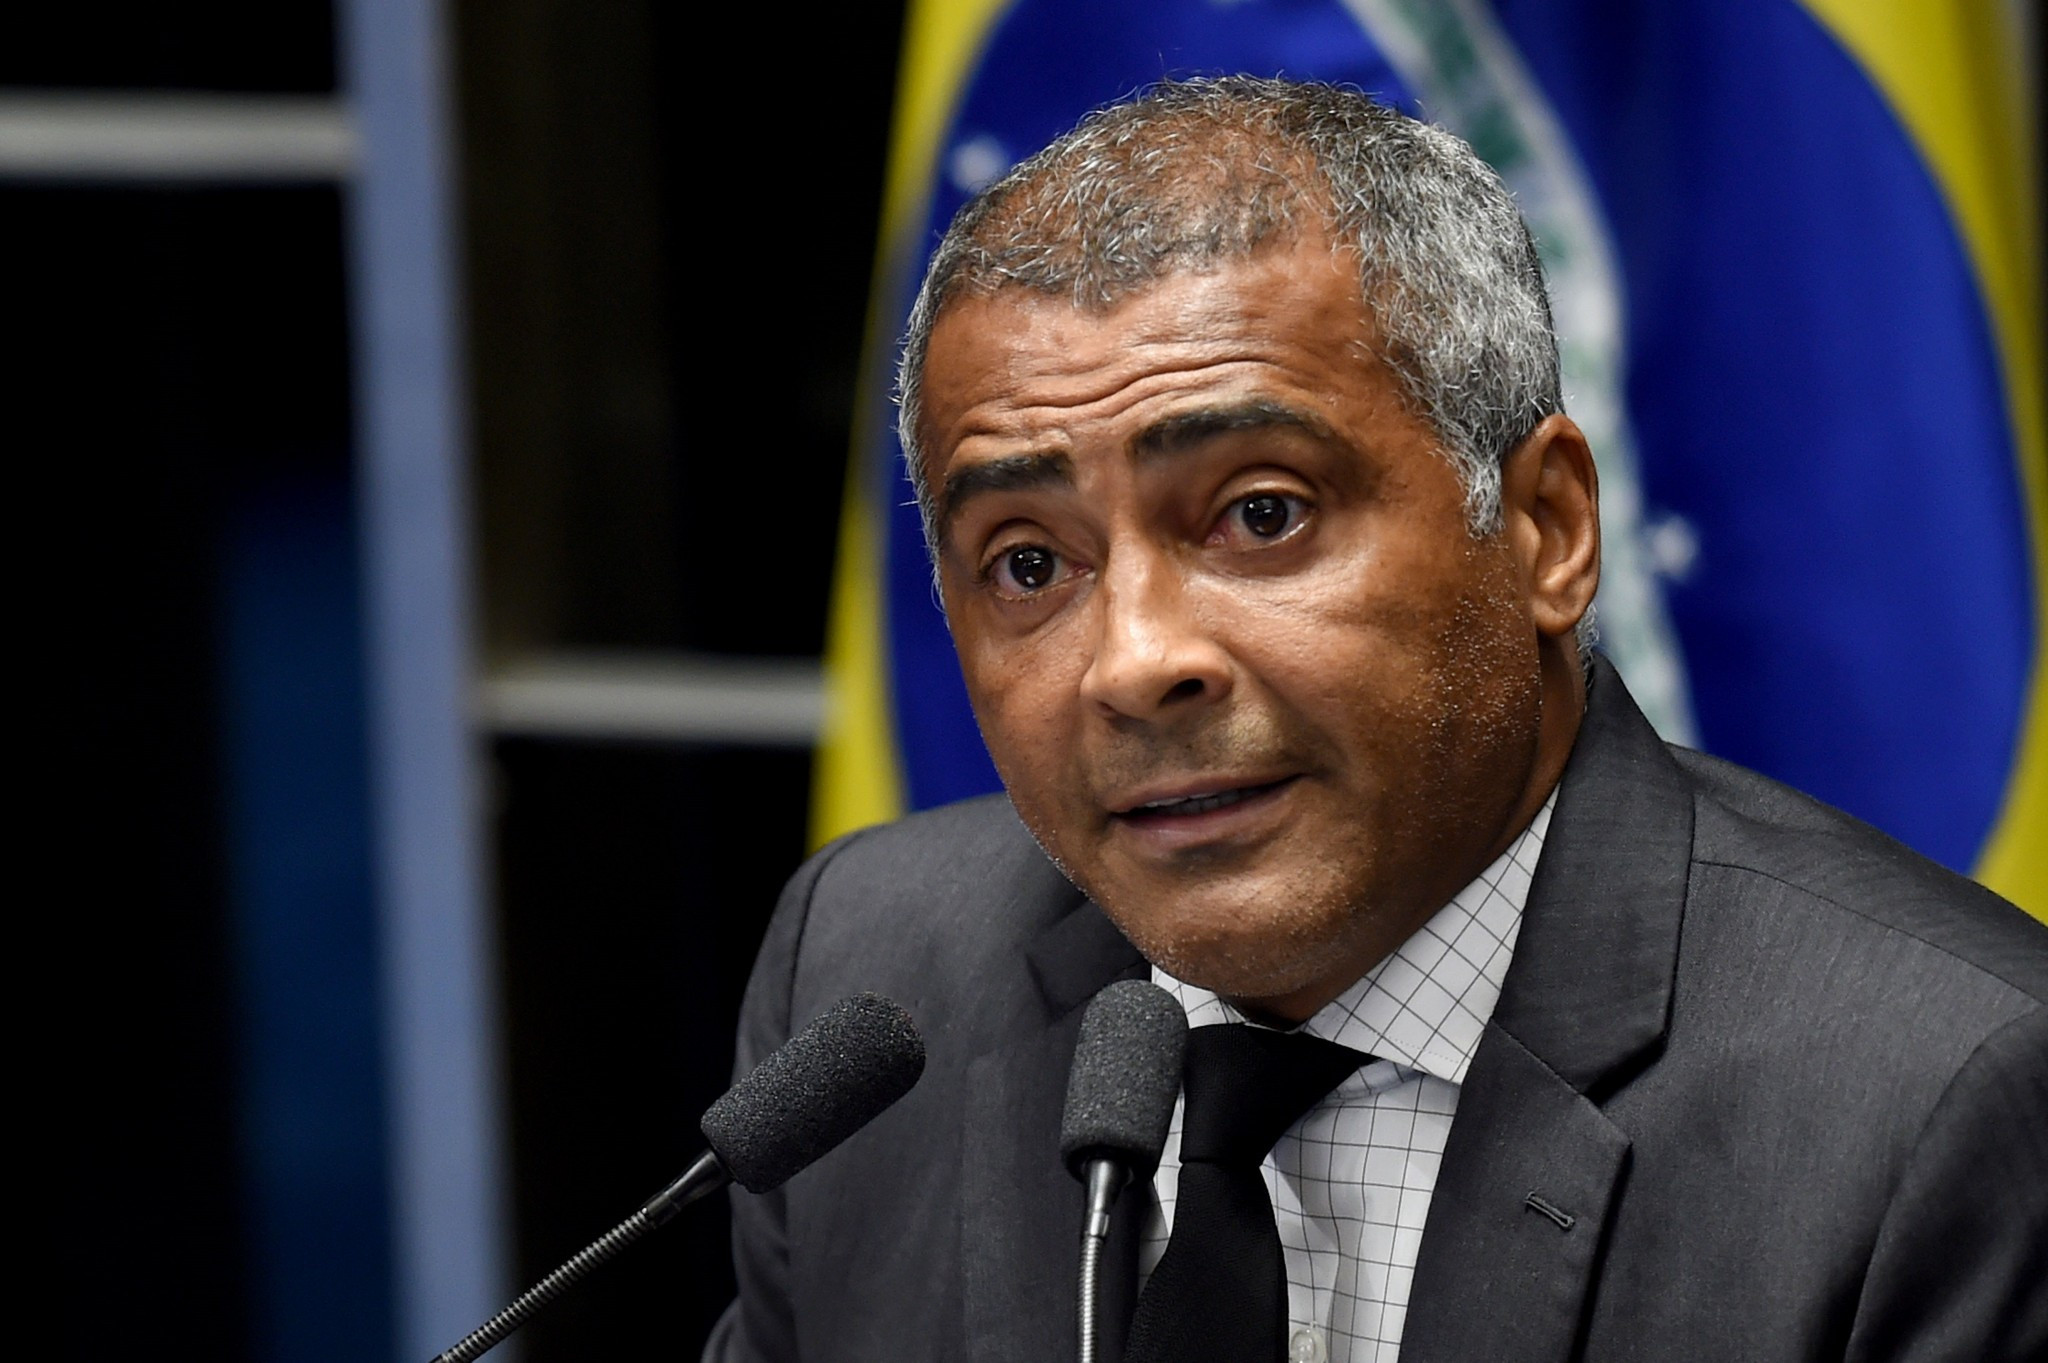 Football legend Romário calls for Parliamentary inquiry into Nuzman and Brazilian Olympic Committee